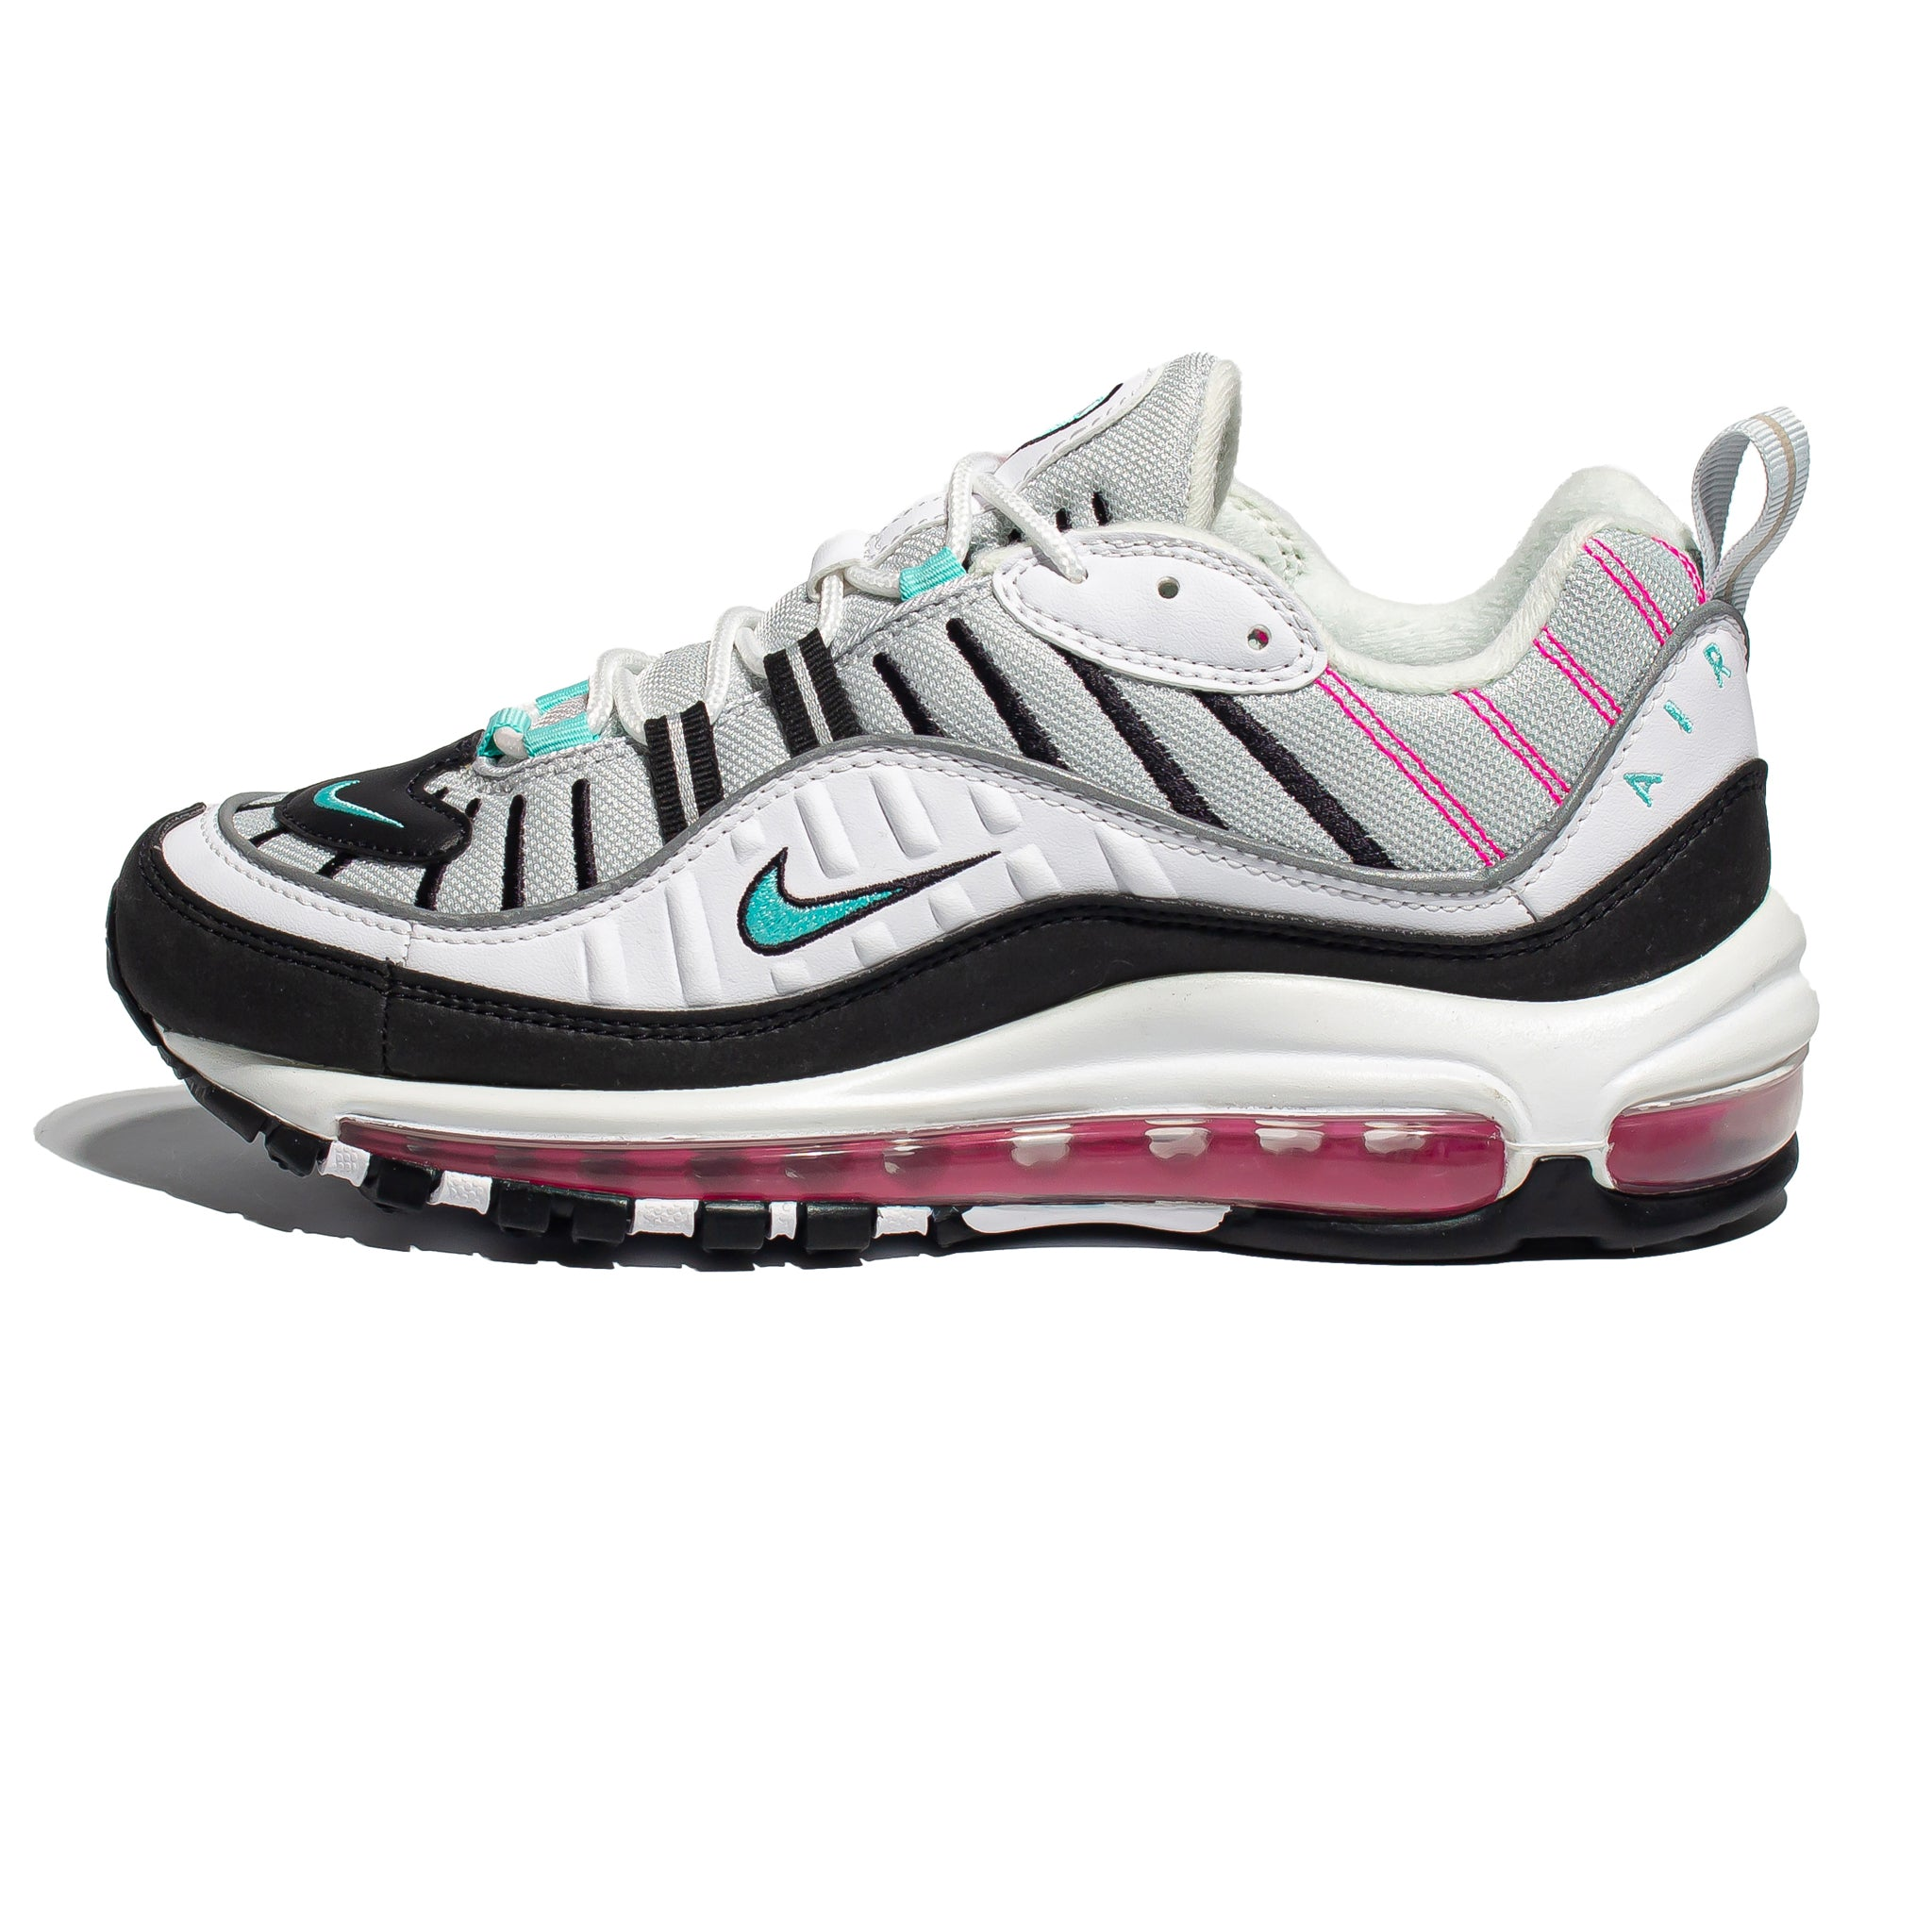 Nike Air Max 98 'South Beach'